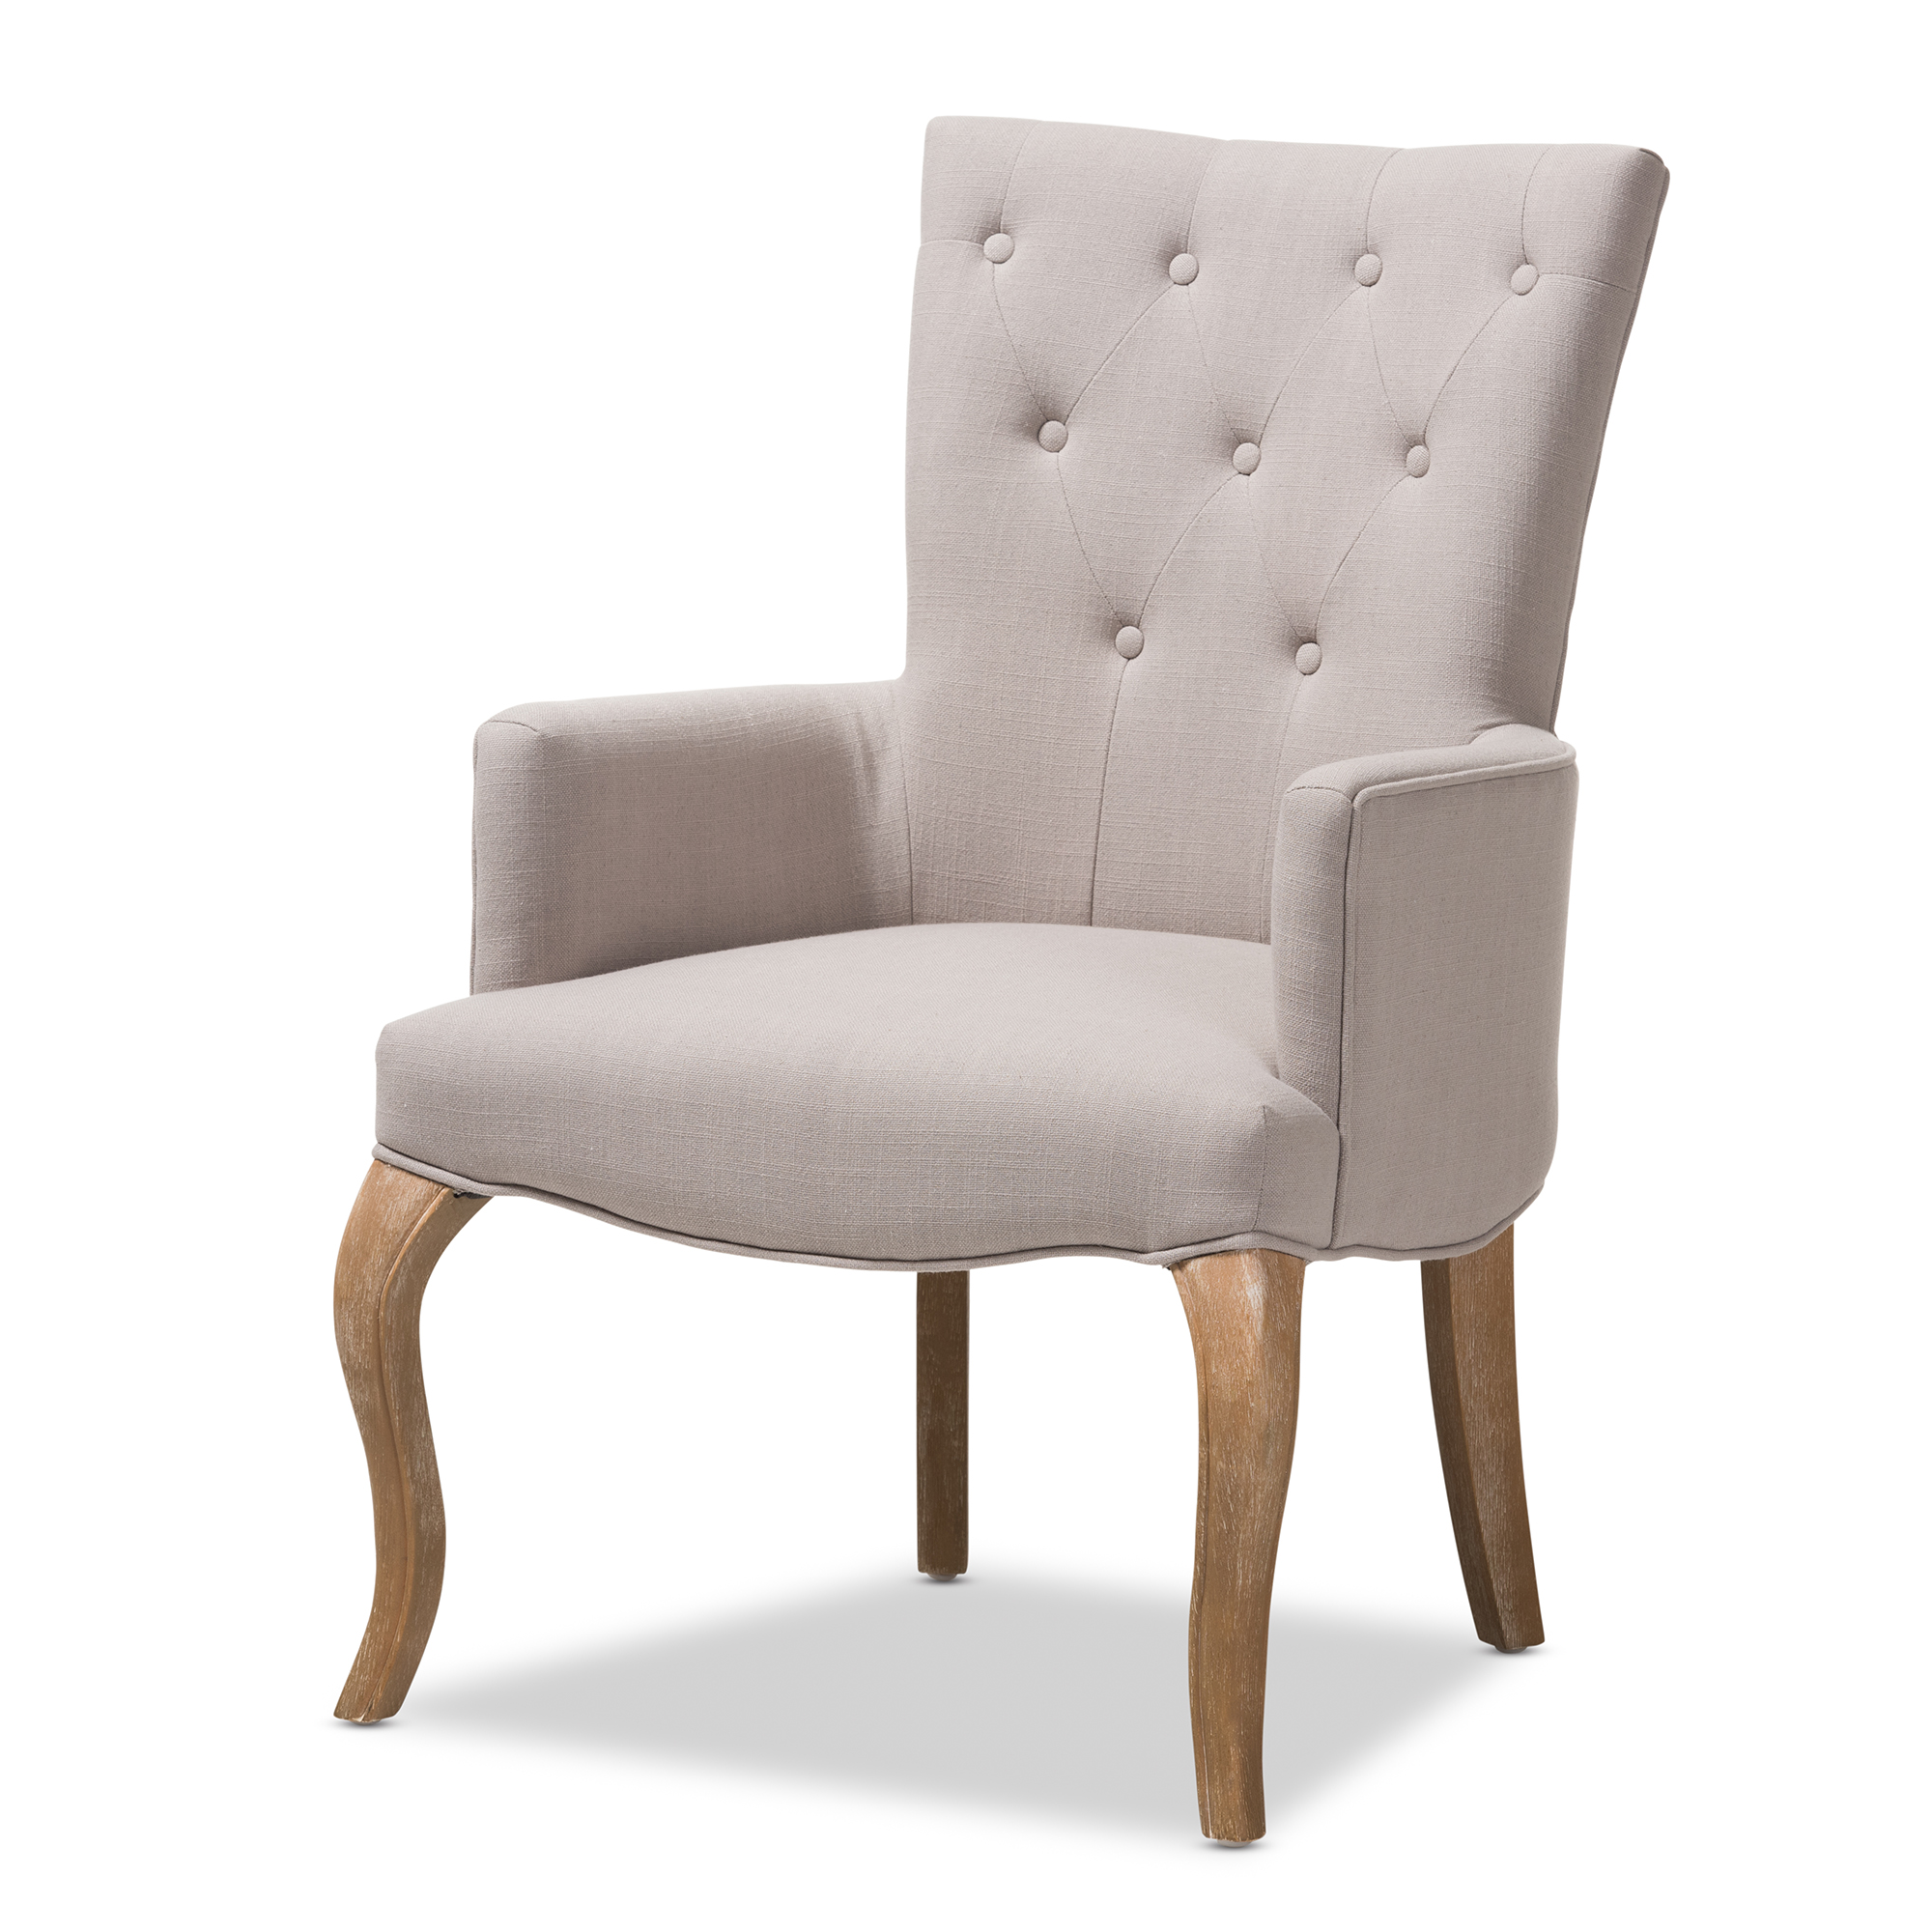 Baxton Studio Clotille French Provincial Beige Fabric Upholstered  Whitewashed Oak Lounge Chair